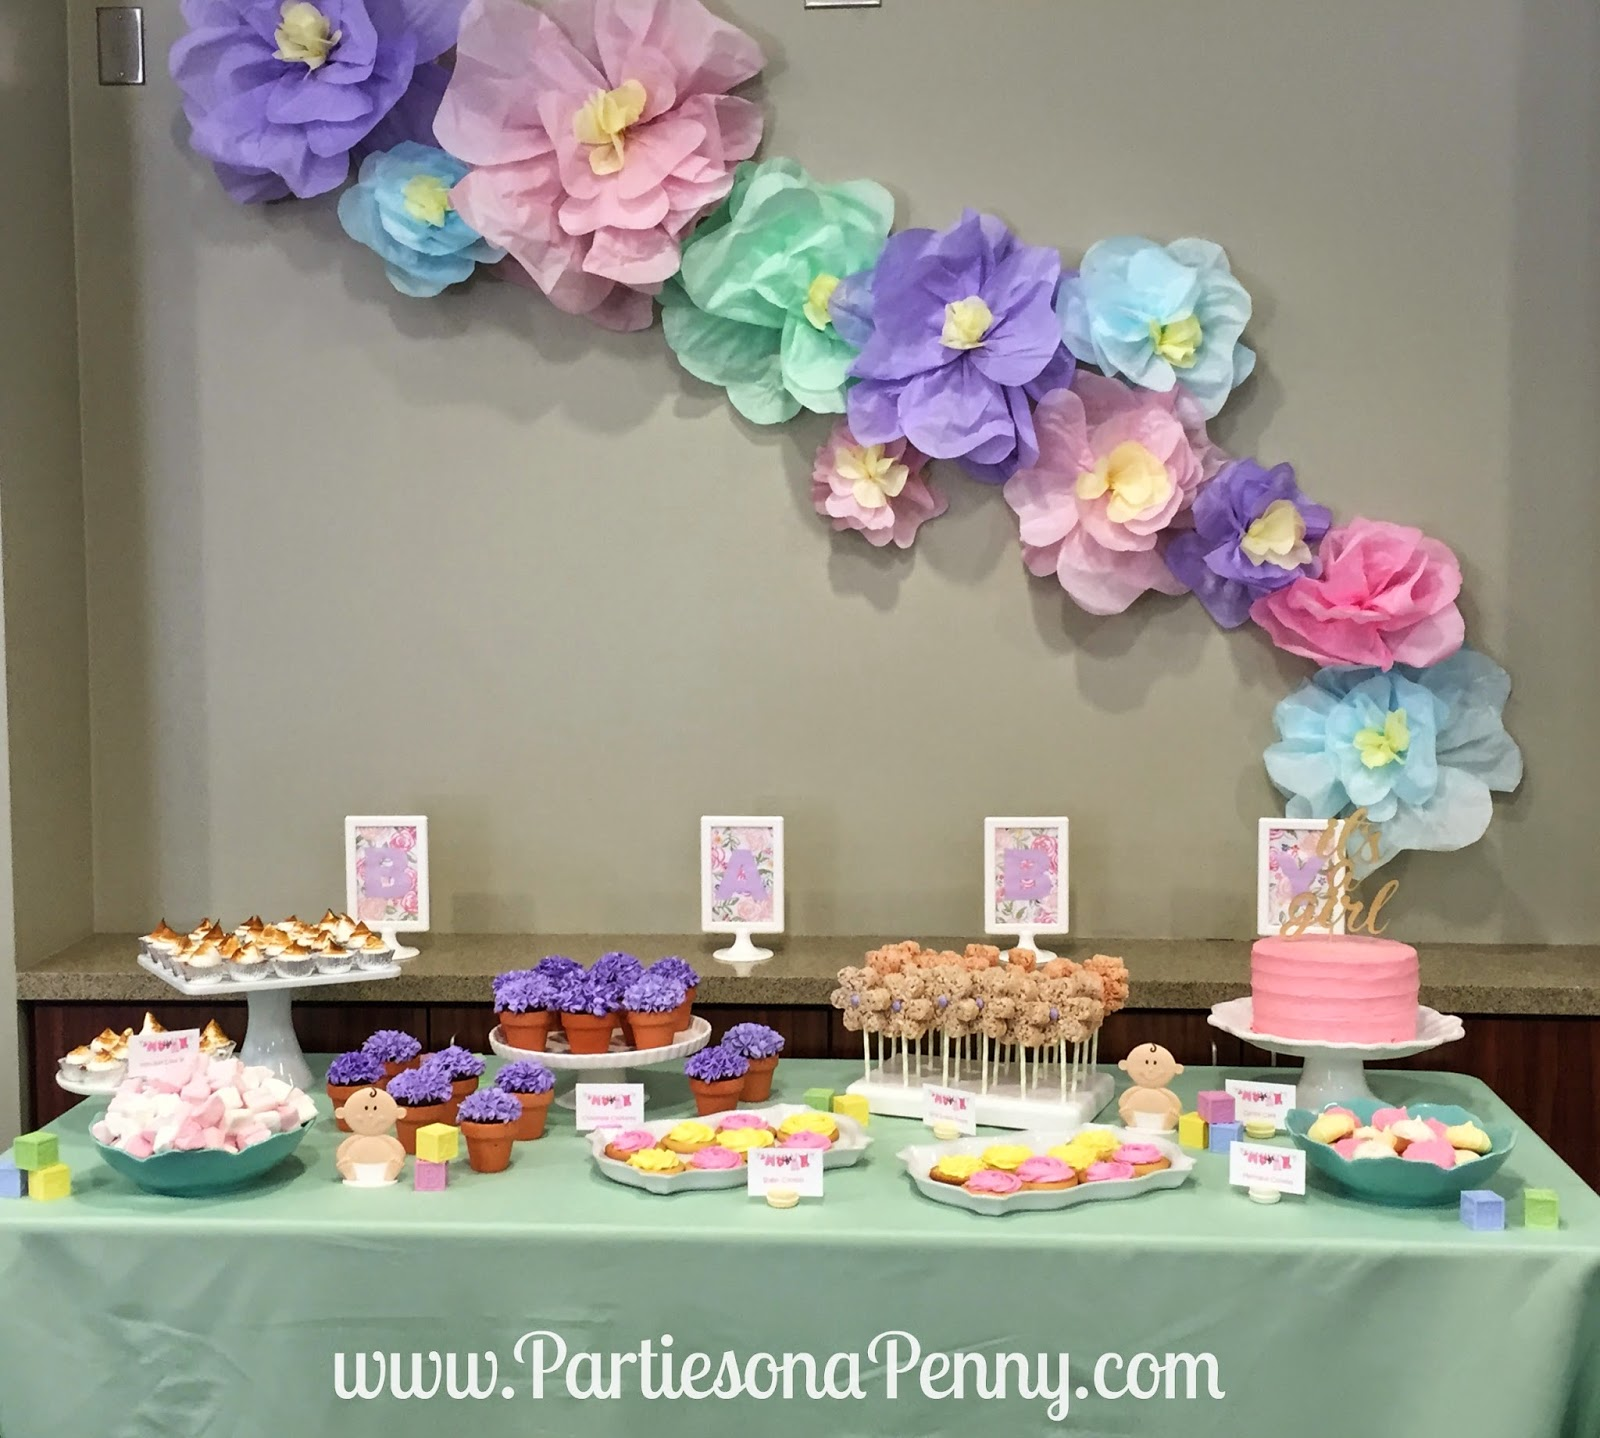 Parties On A Penny: Spring Themed Baby Shower